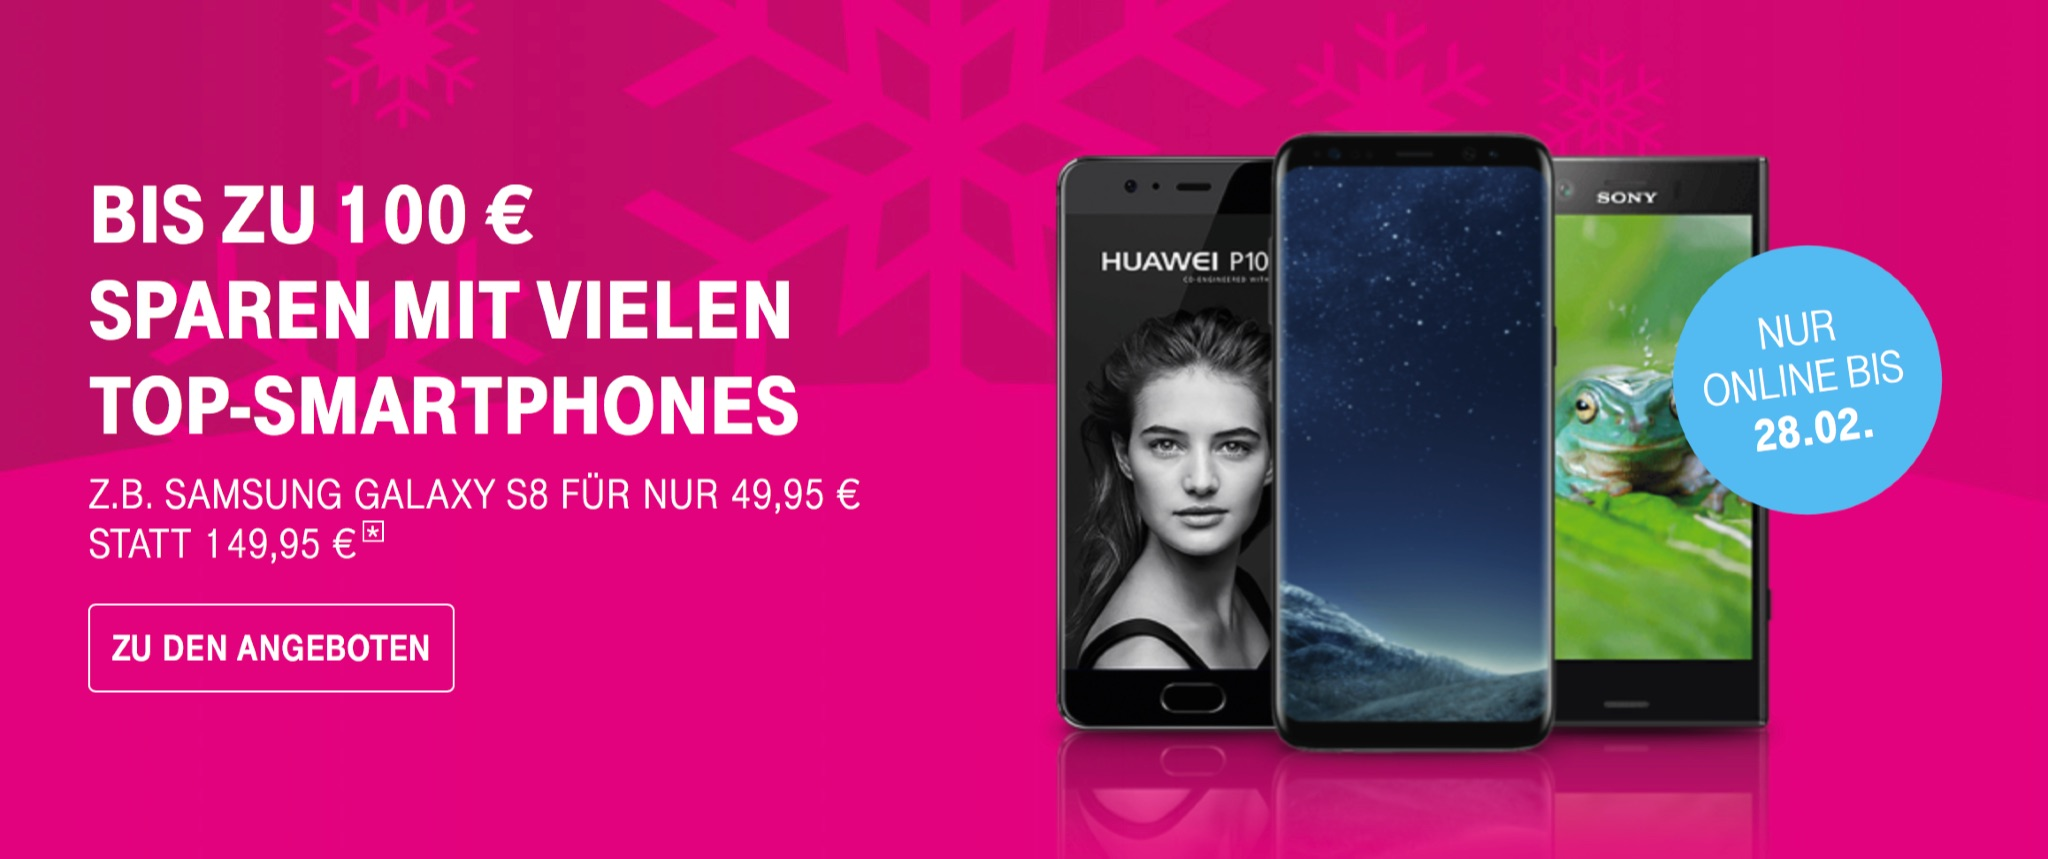 telekom aktion bis zu 100 euro rabatt auf iphone 8. Black Bedroom Furniture Sets. Home Design Ideas